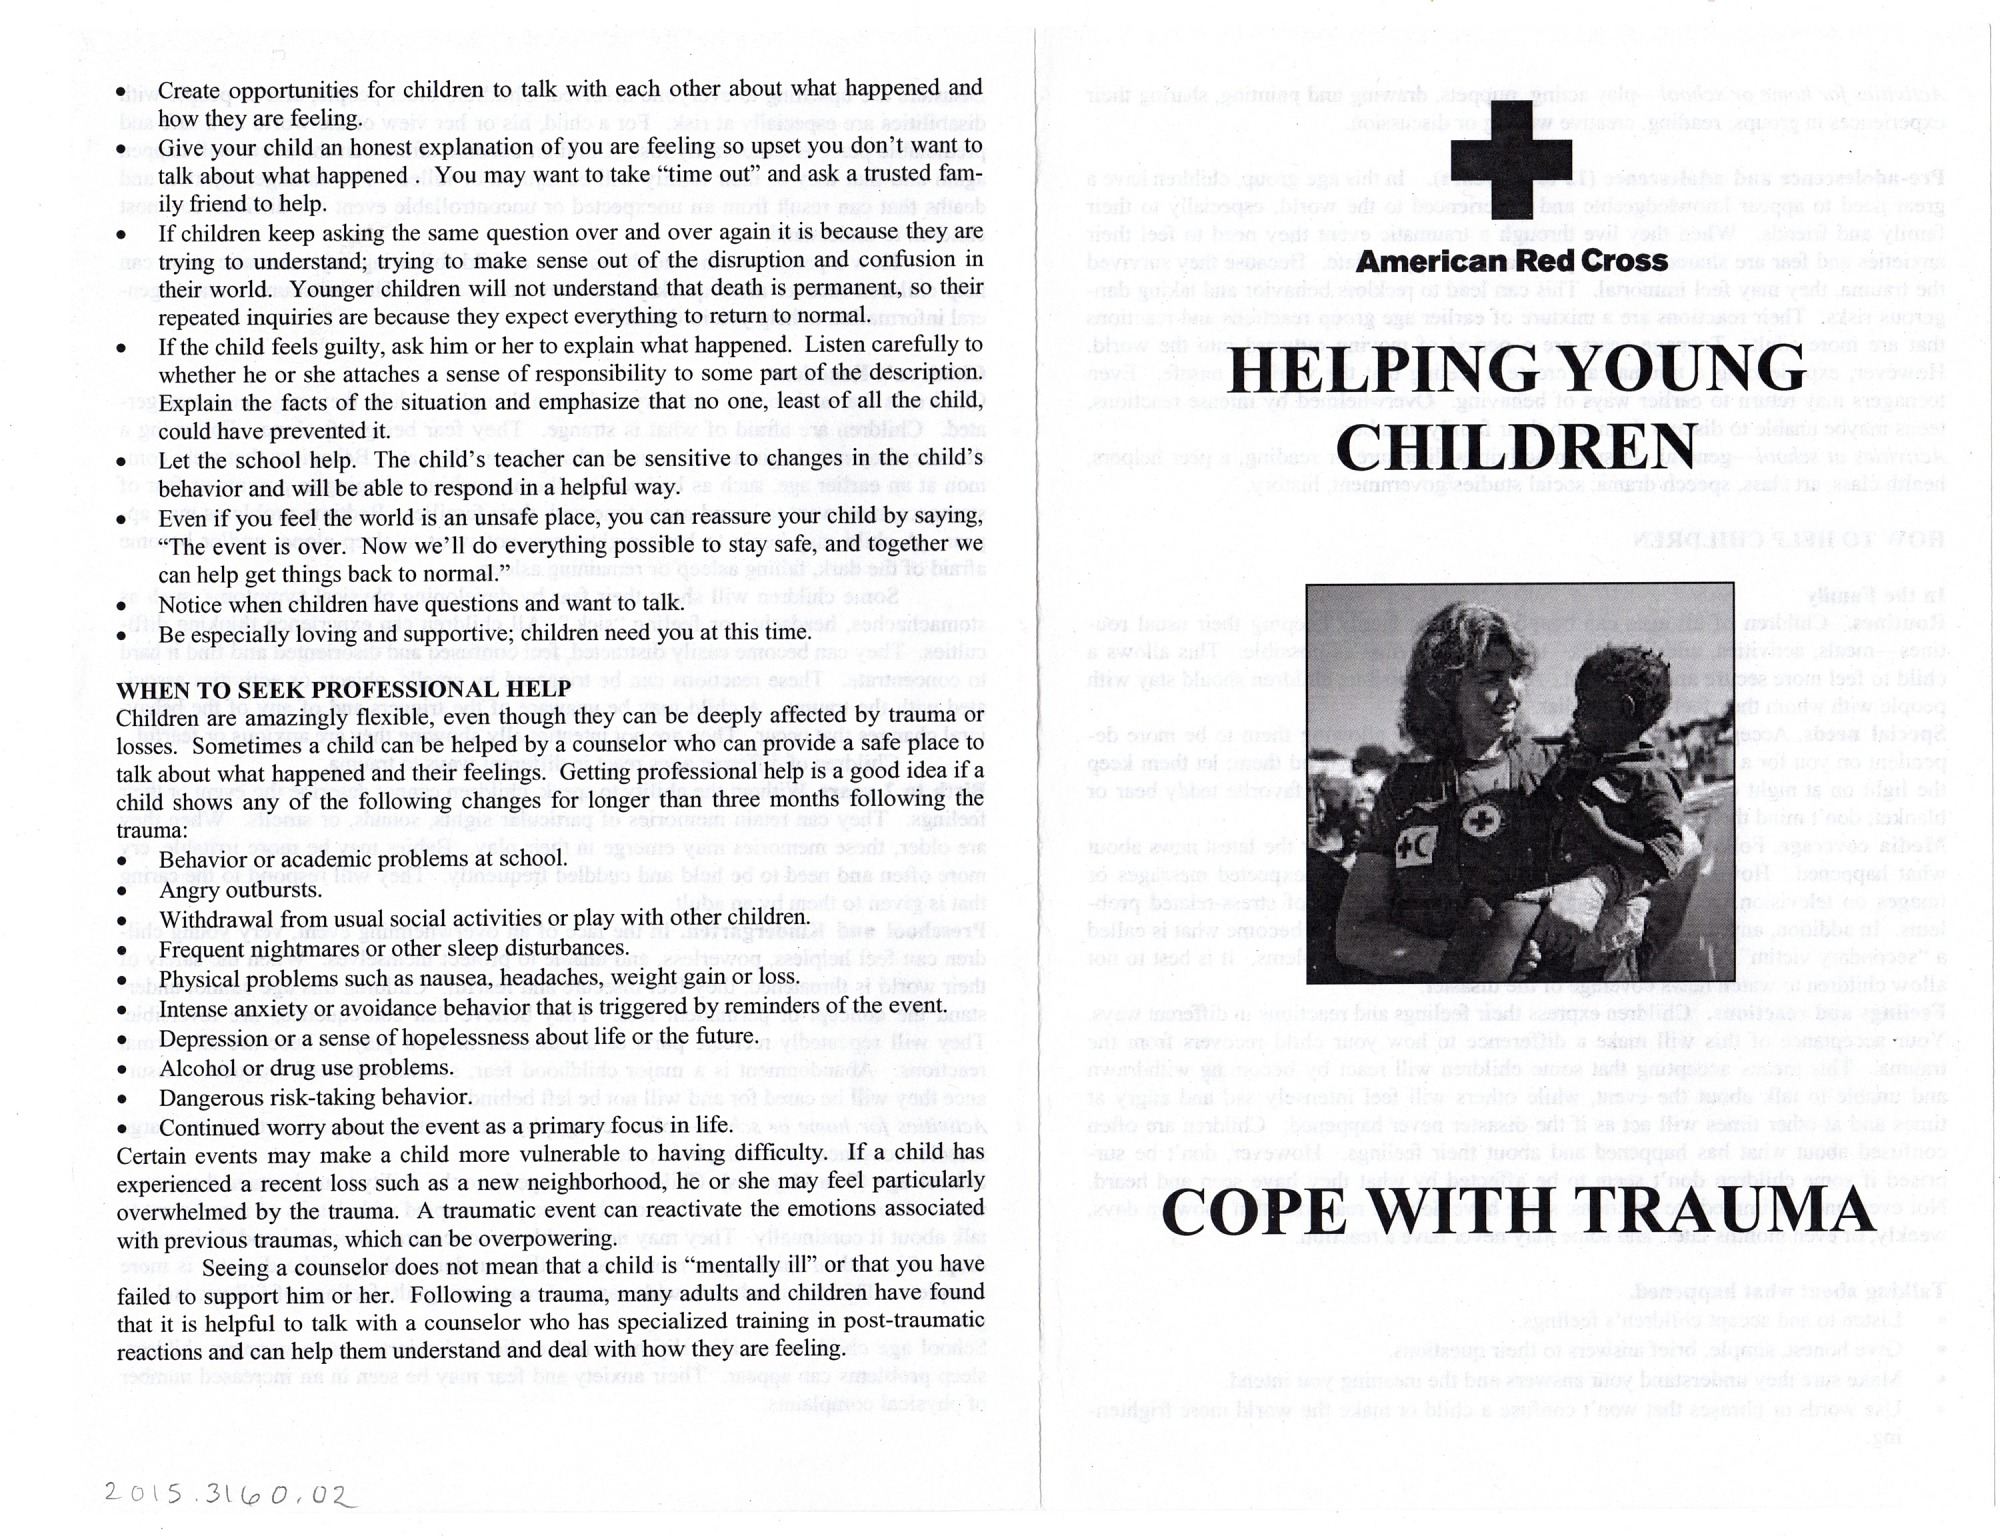 Helping Young Children Cope with Trauma